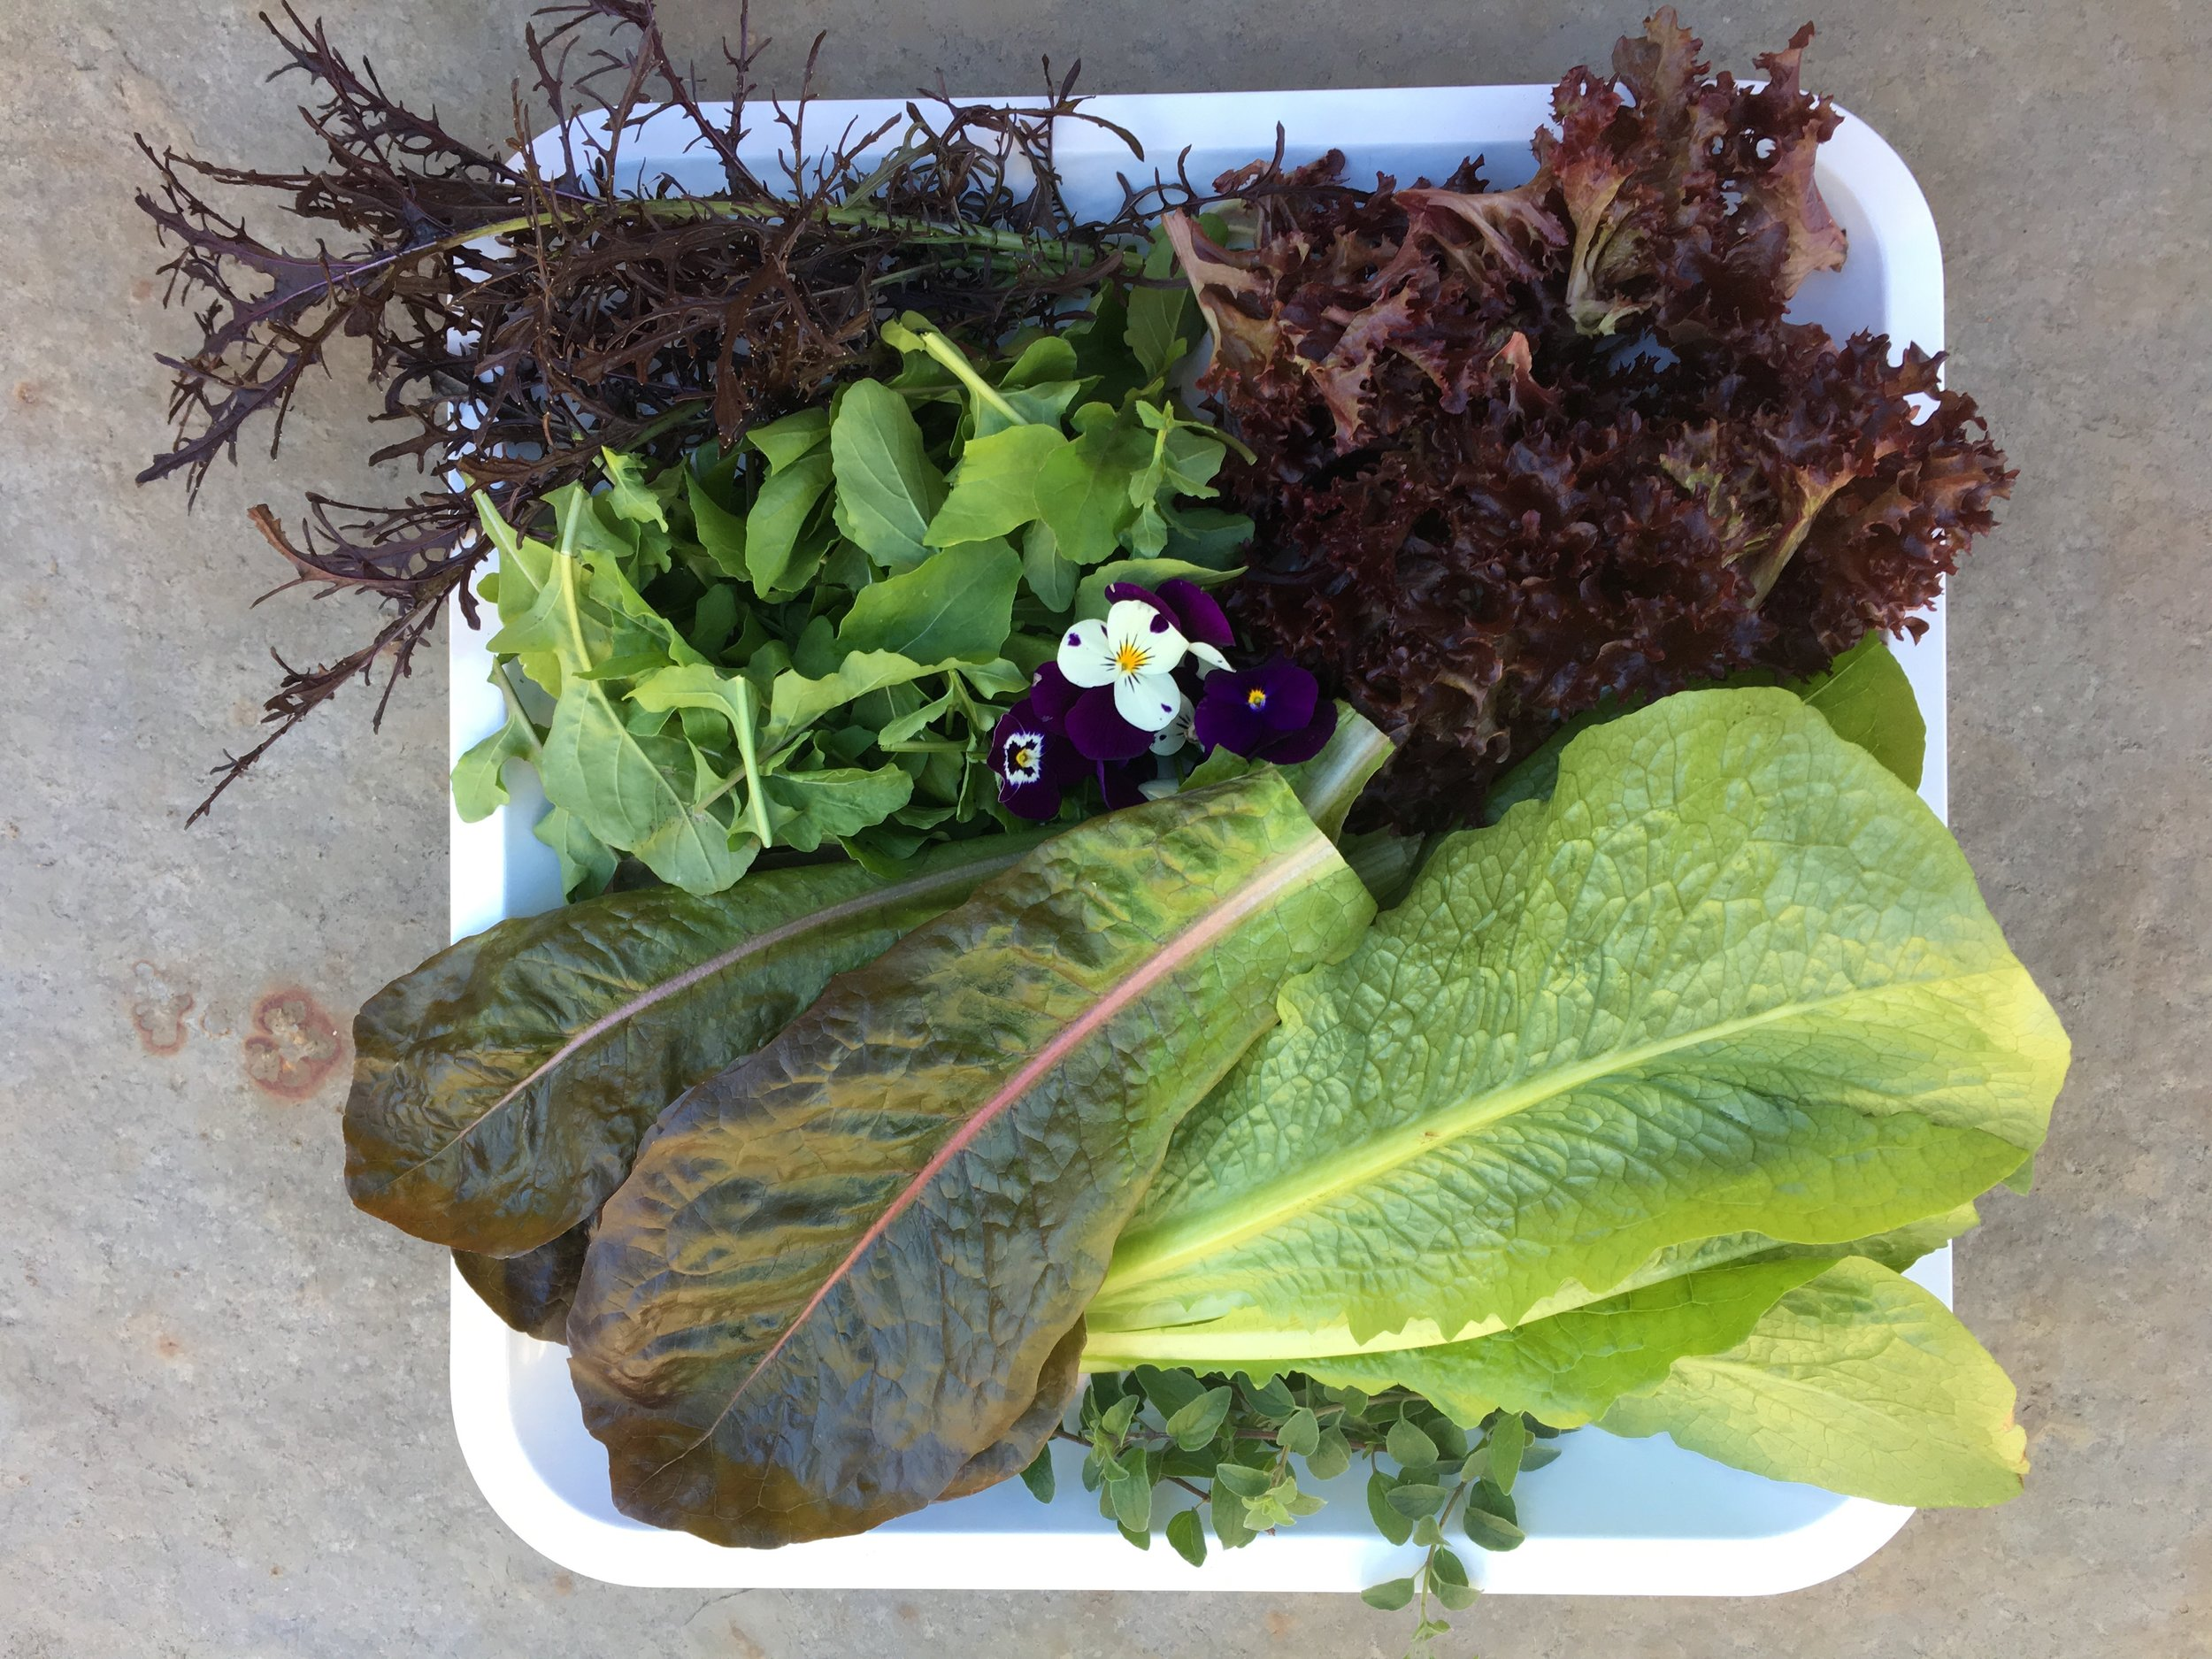 Gifts of greens